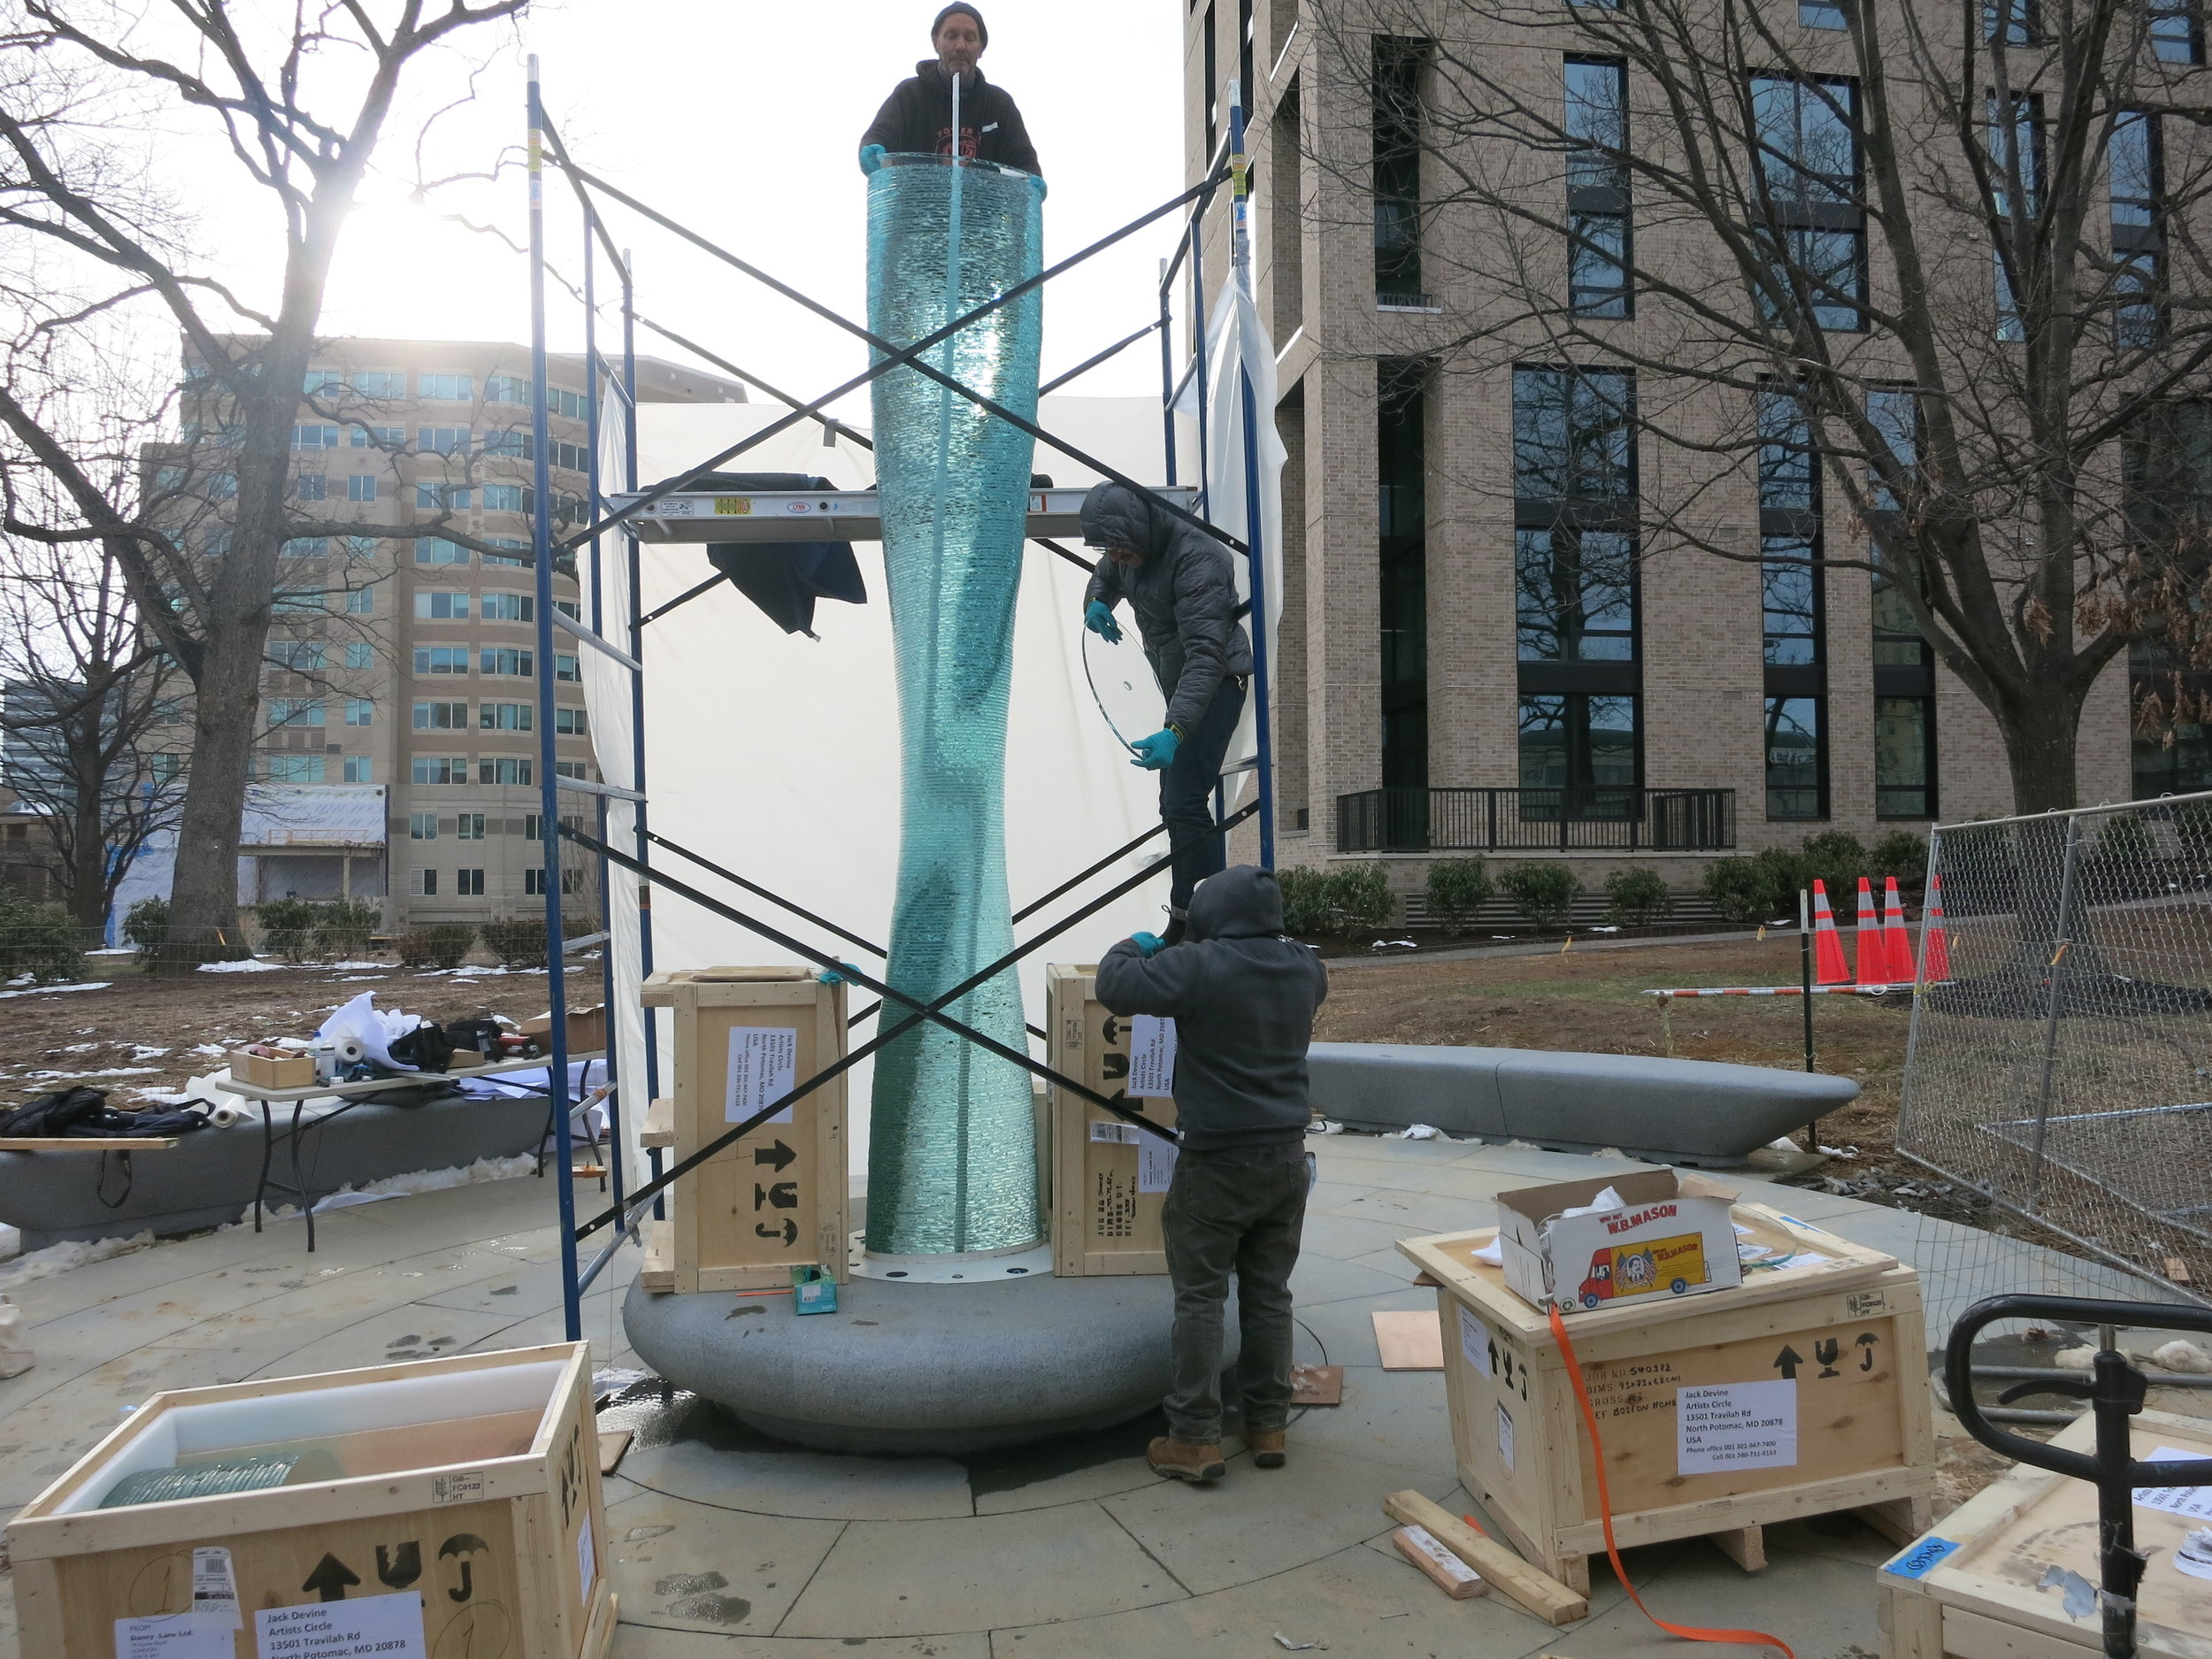 The sculpture being put togther (took 2 days to assemble on site in Reston, VA)